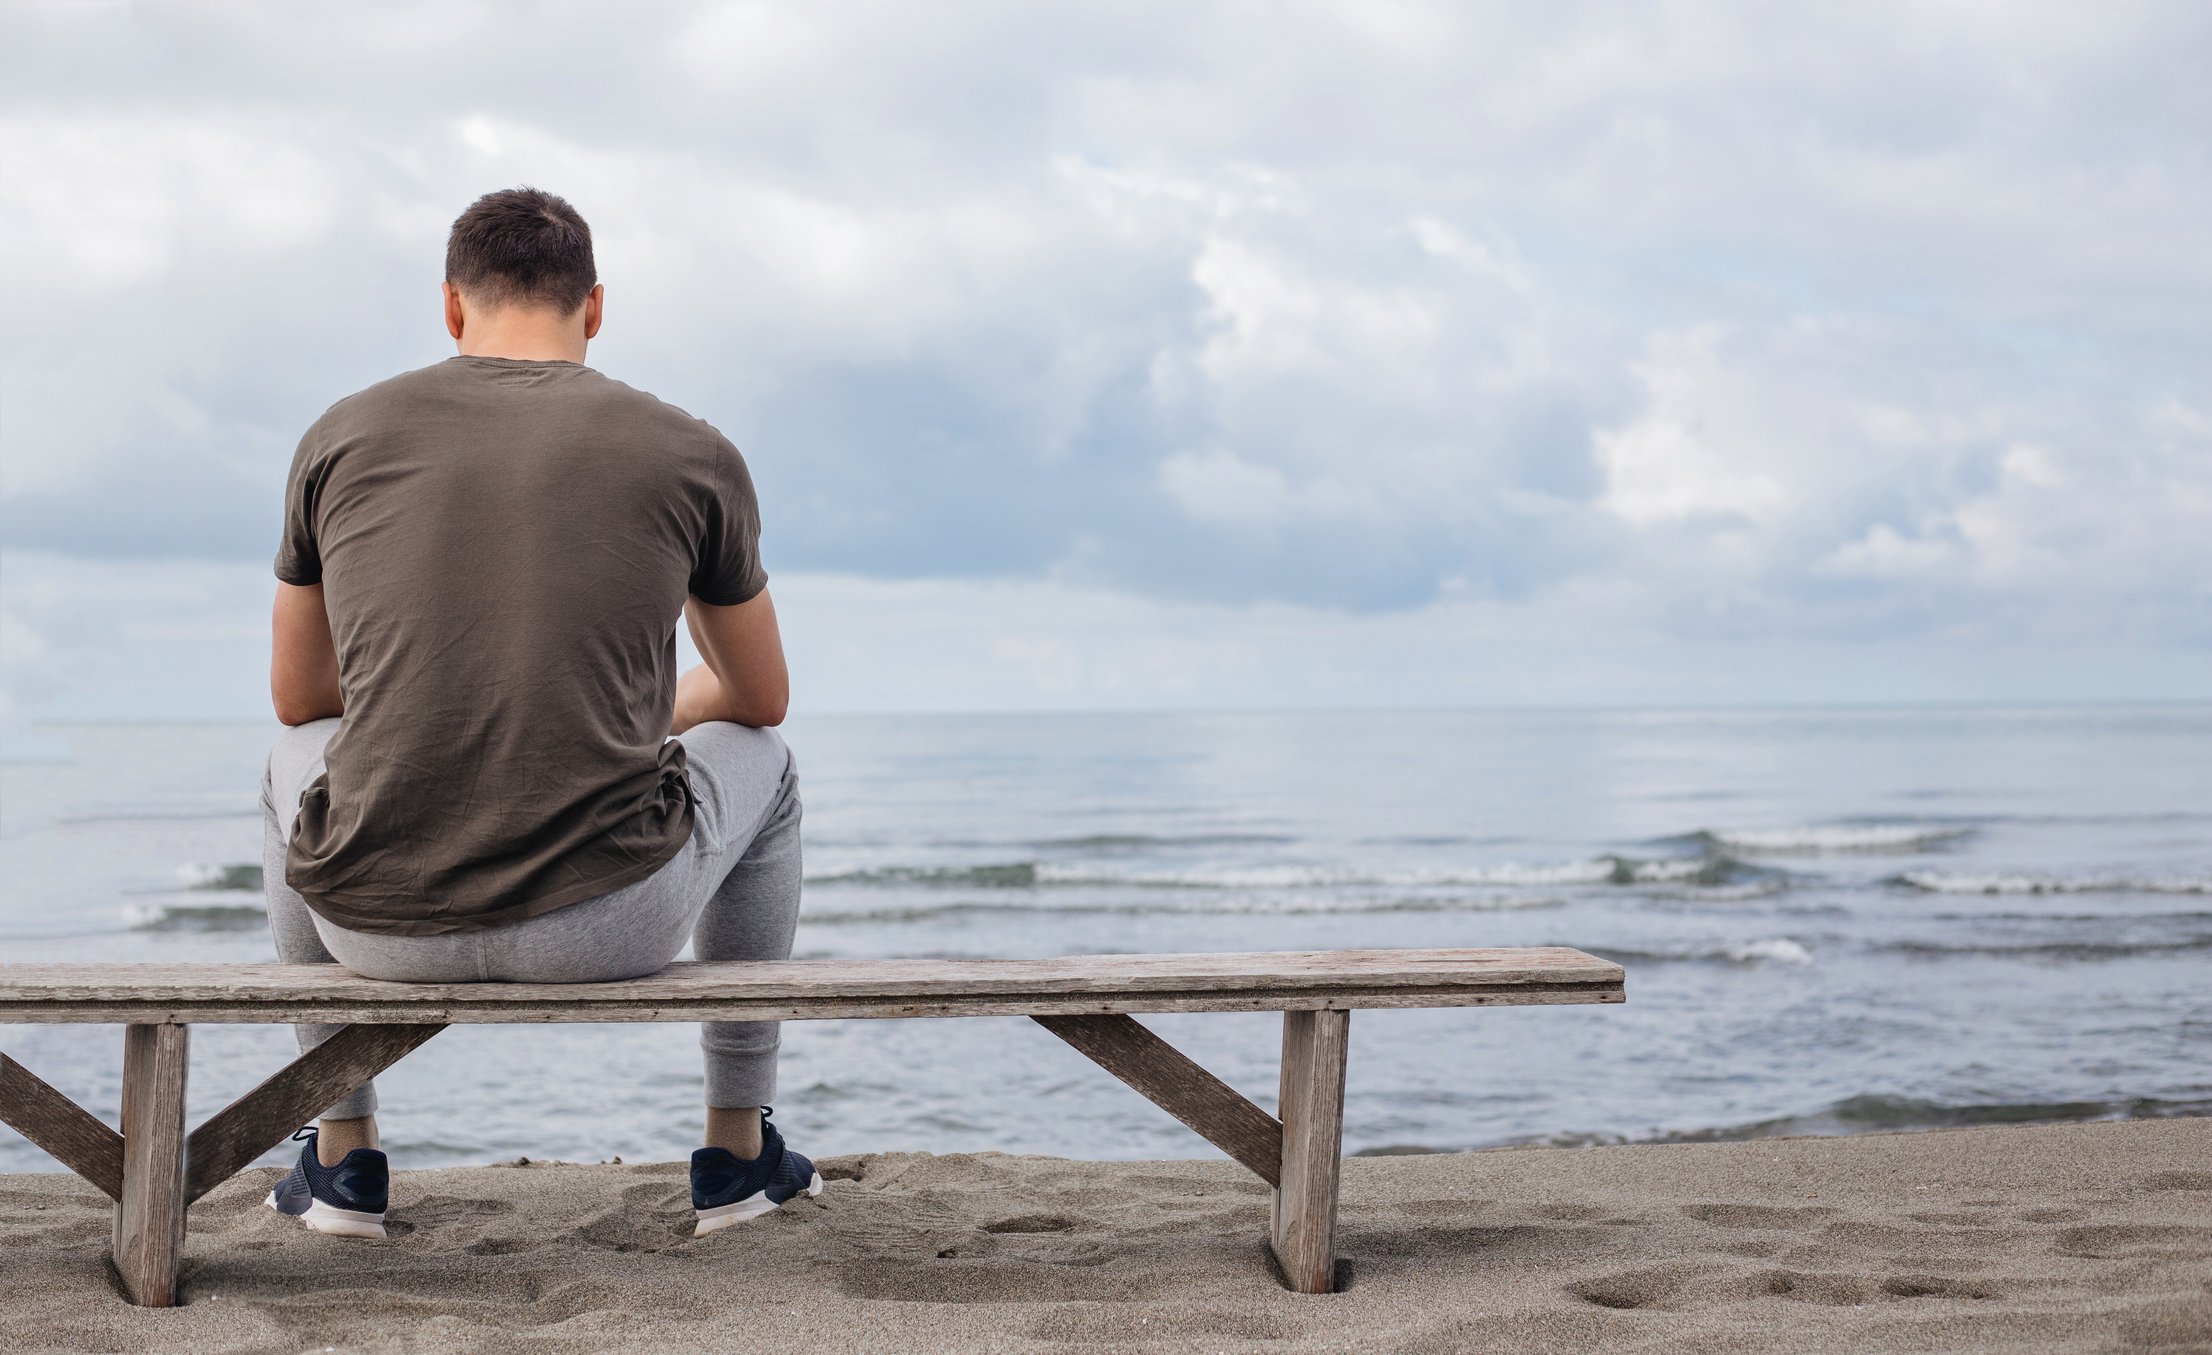 Man sitting on a bench at the beach by himself